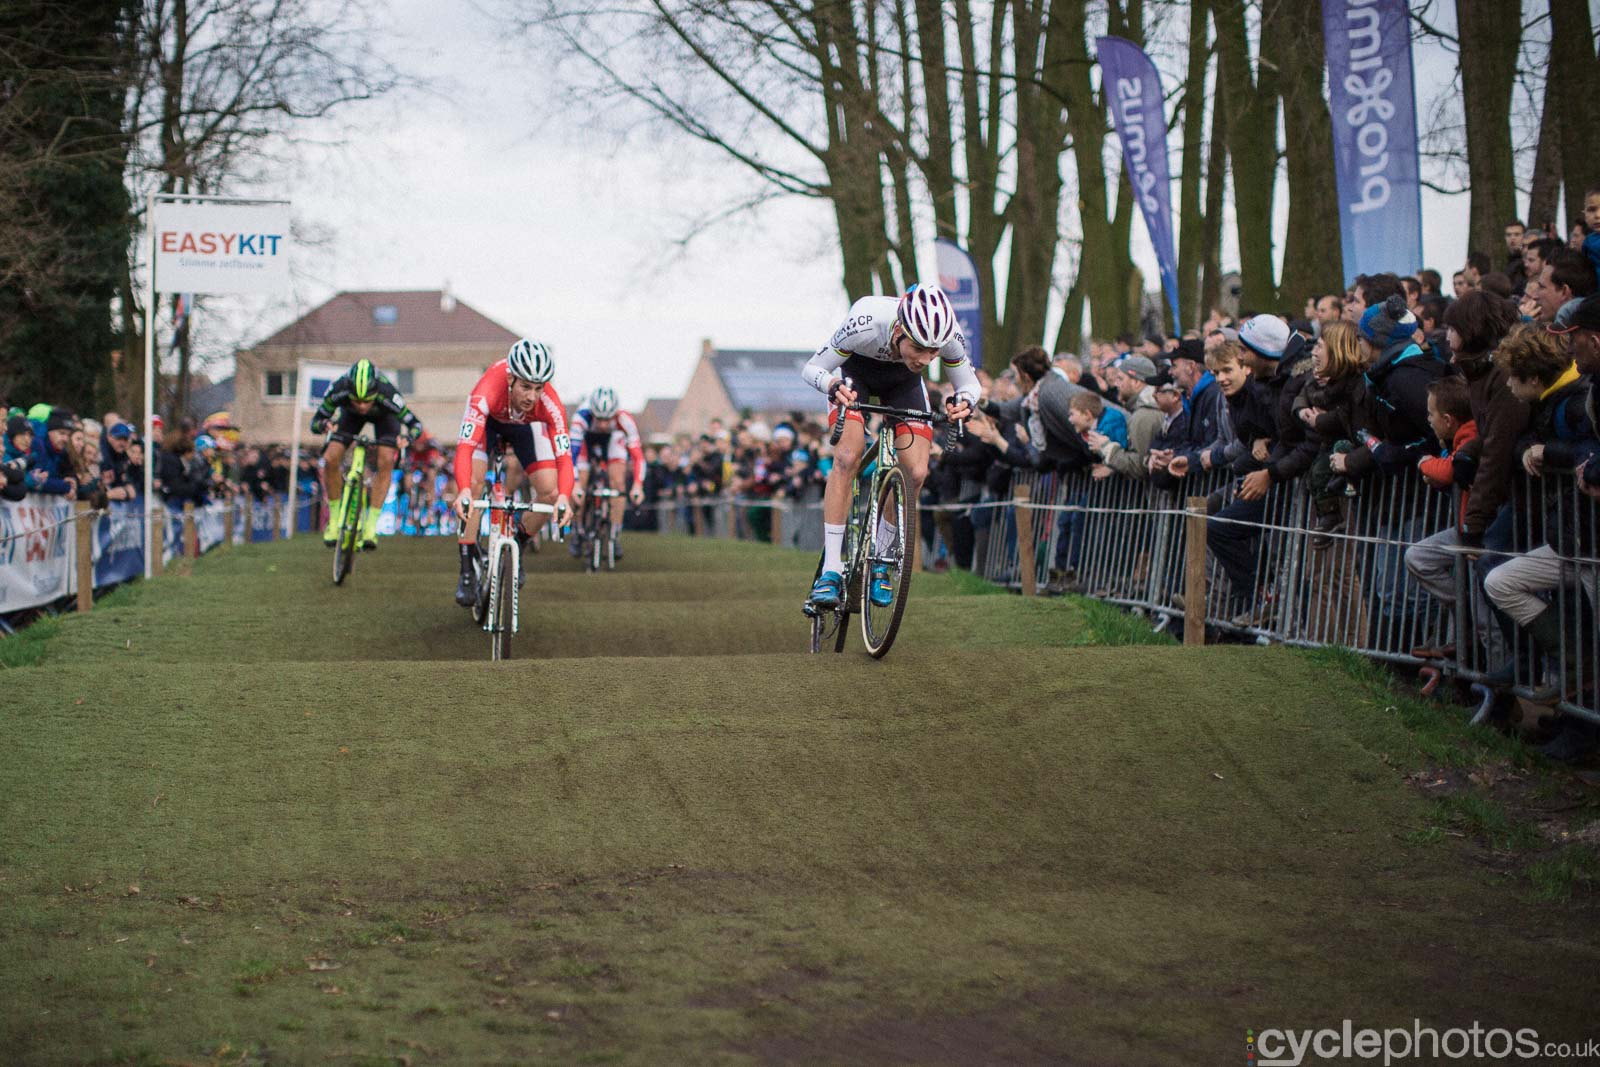 2015-cyclephotos-cyclocross-azencross-152451-mathieu-van-der-poel